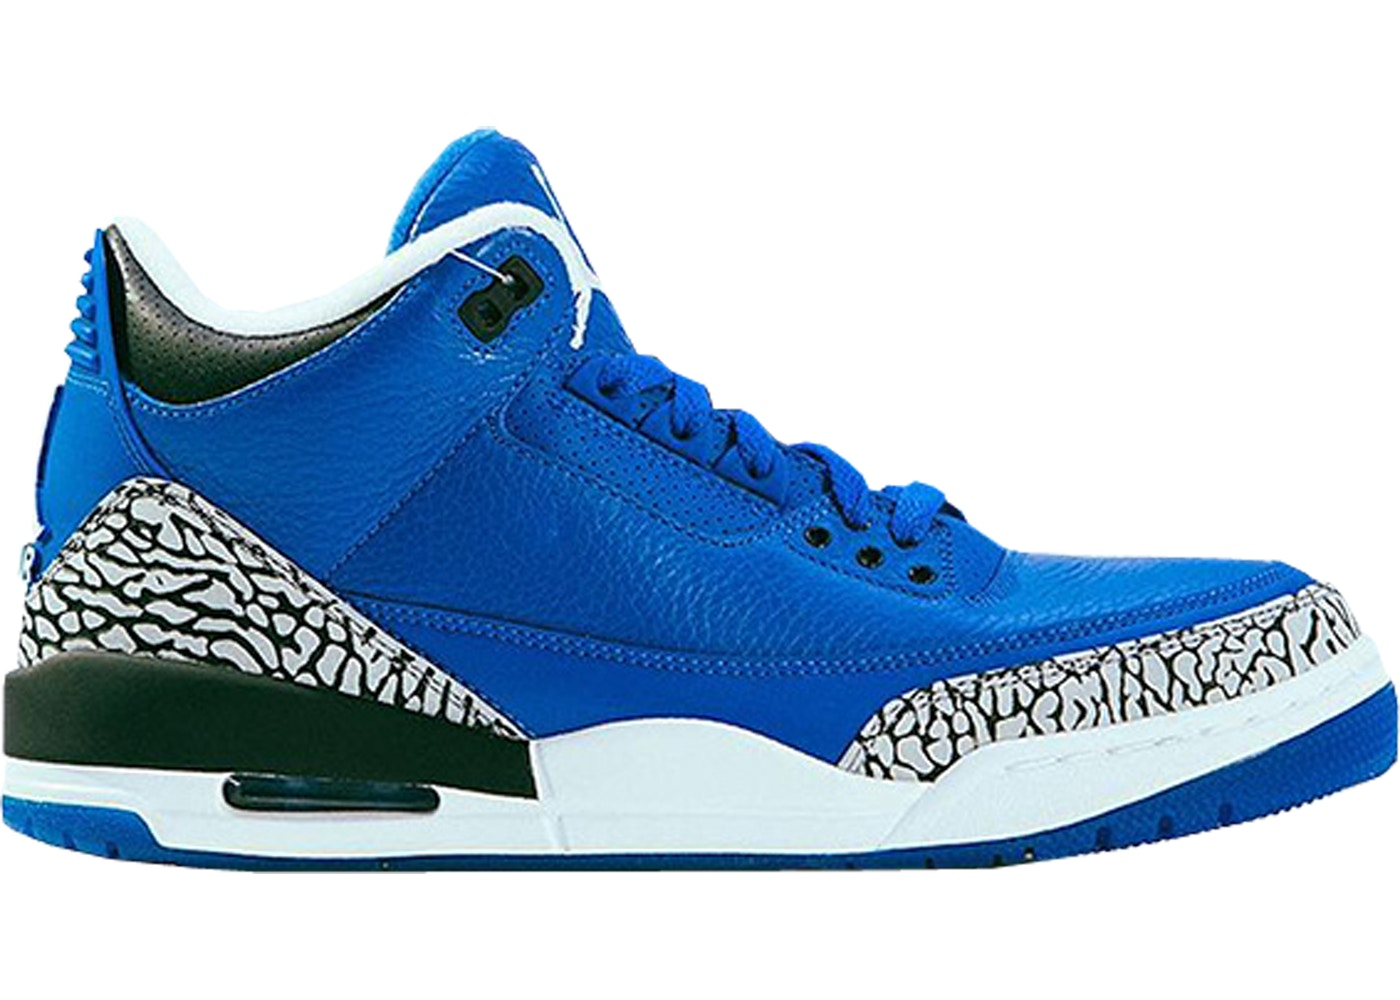 44d5602c84e Sell. or Ask. Size 8. View All Bids. Jordan 3 Retro DJ Khaled Another One